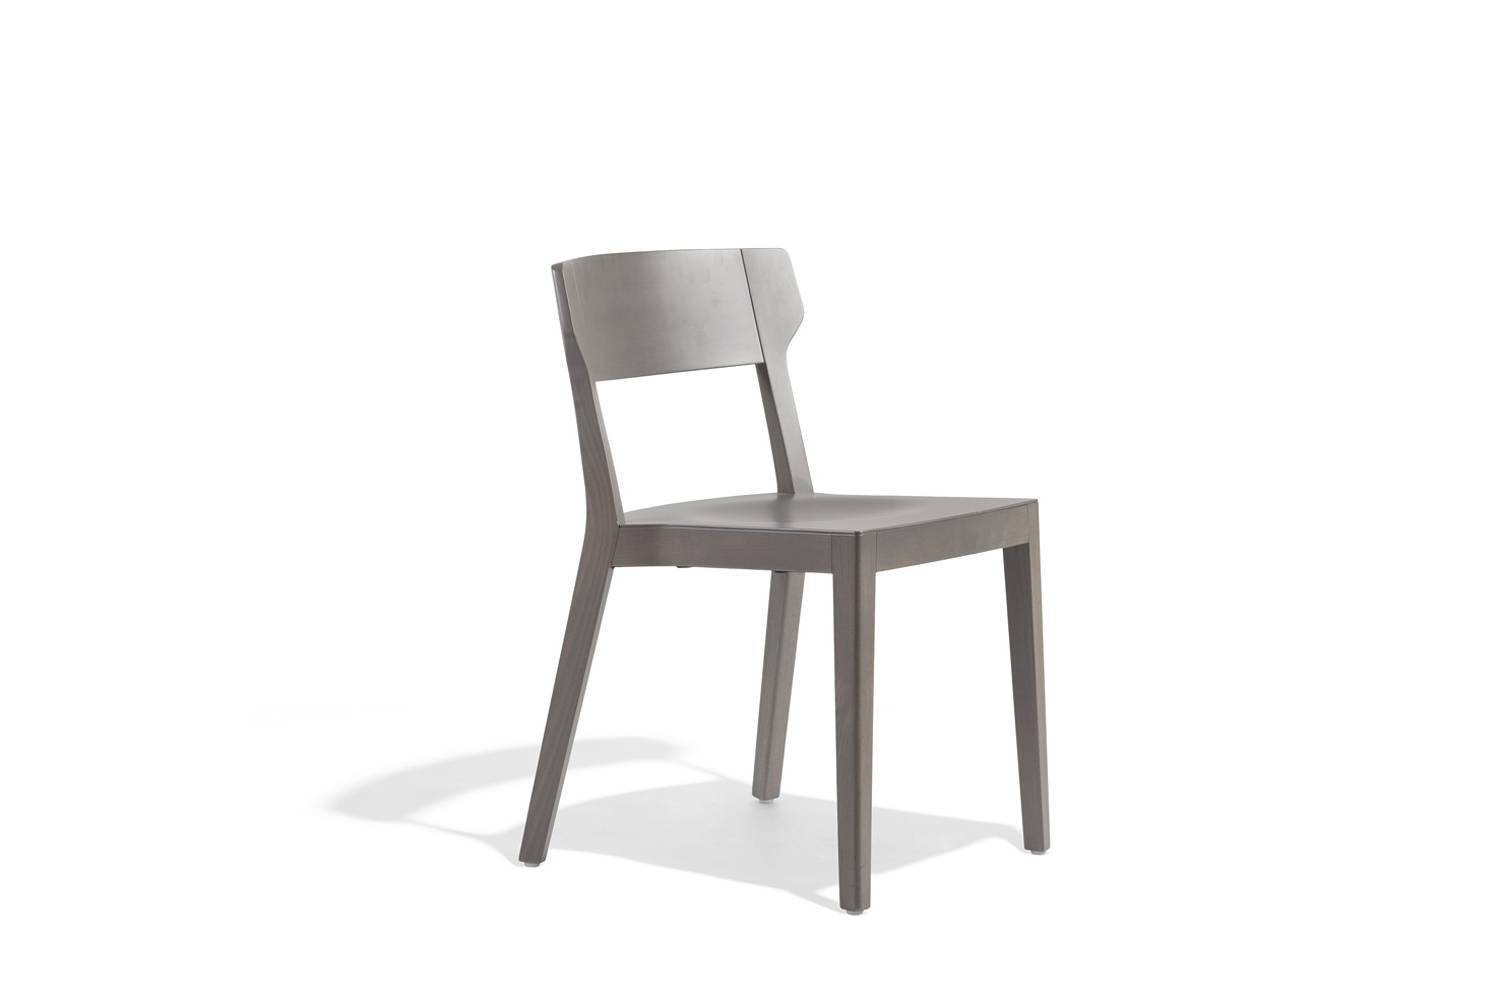 Scarlet Chair by This Weber for Accademia